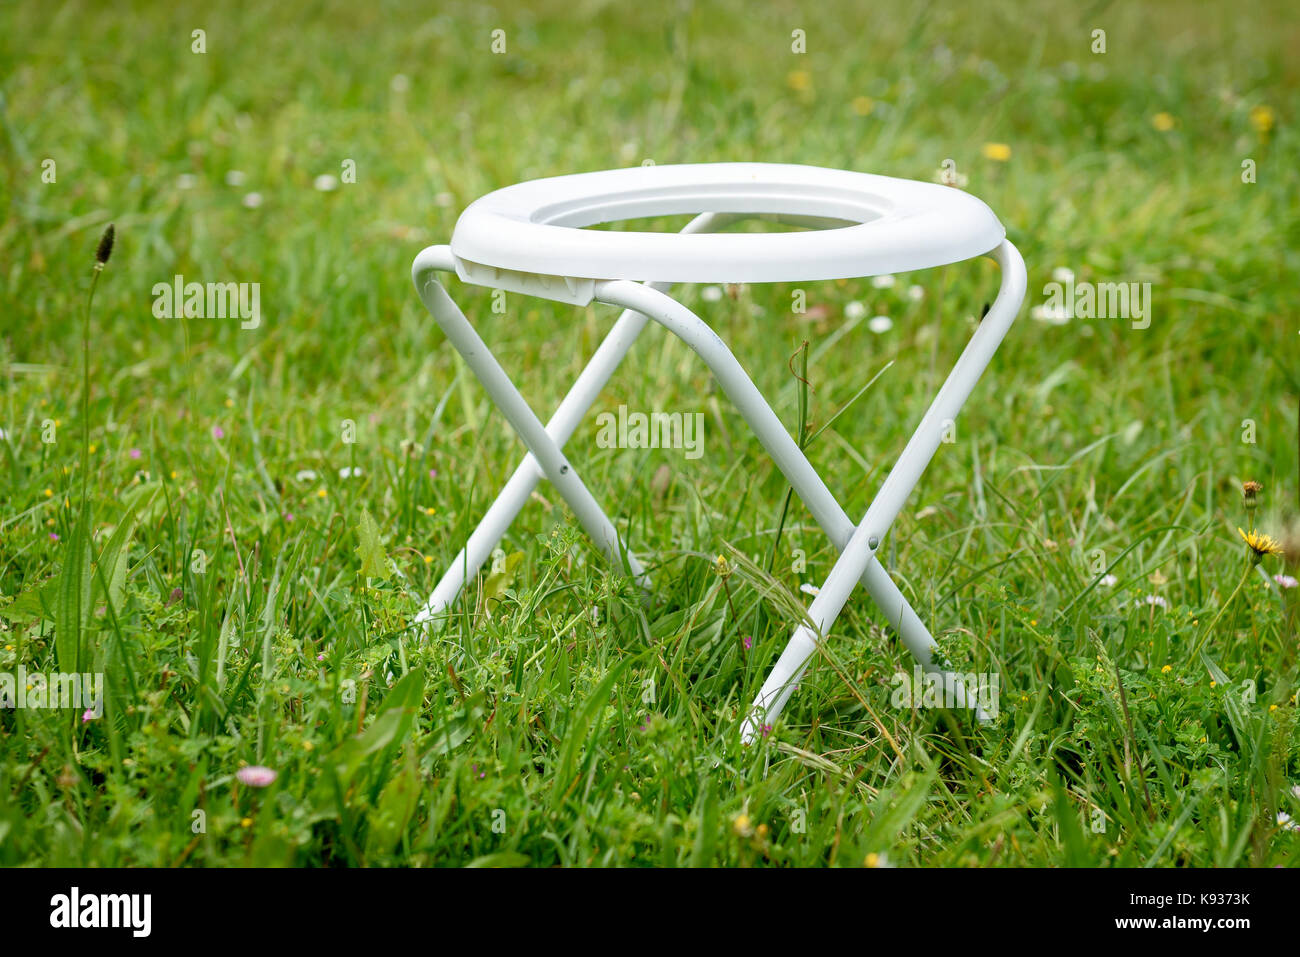 Portable Camping Toilet : Portable folding camp toilet outdoors in the grass camping or